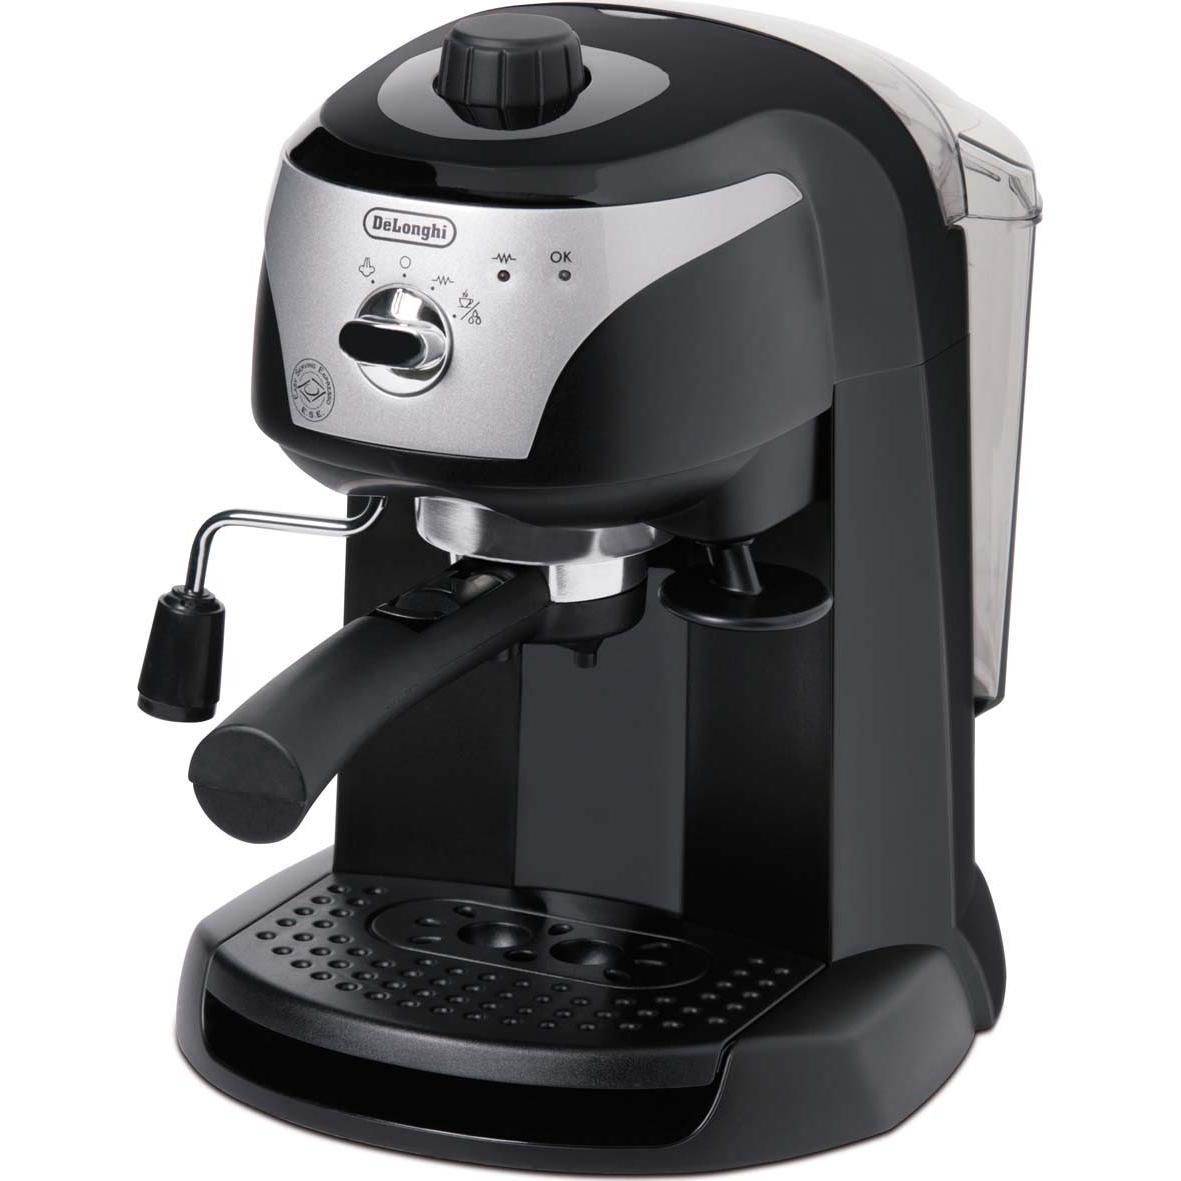 DELONGHI - MACHINE EXPRESSO - EC220CD